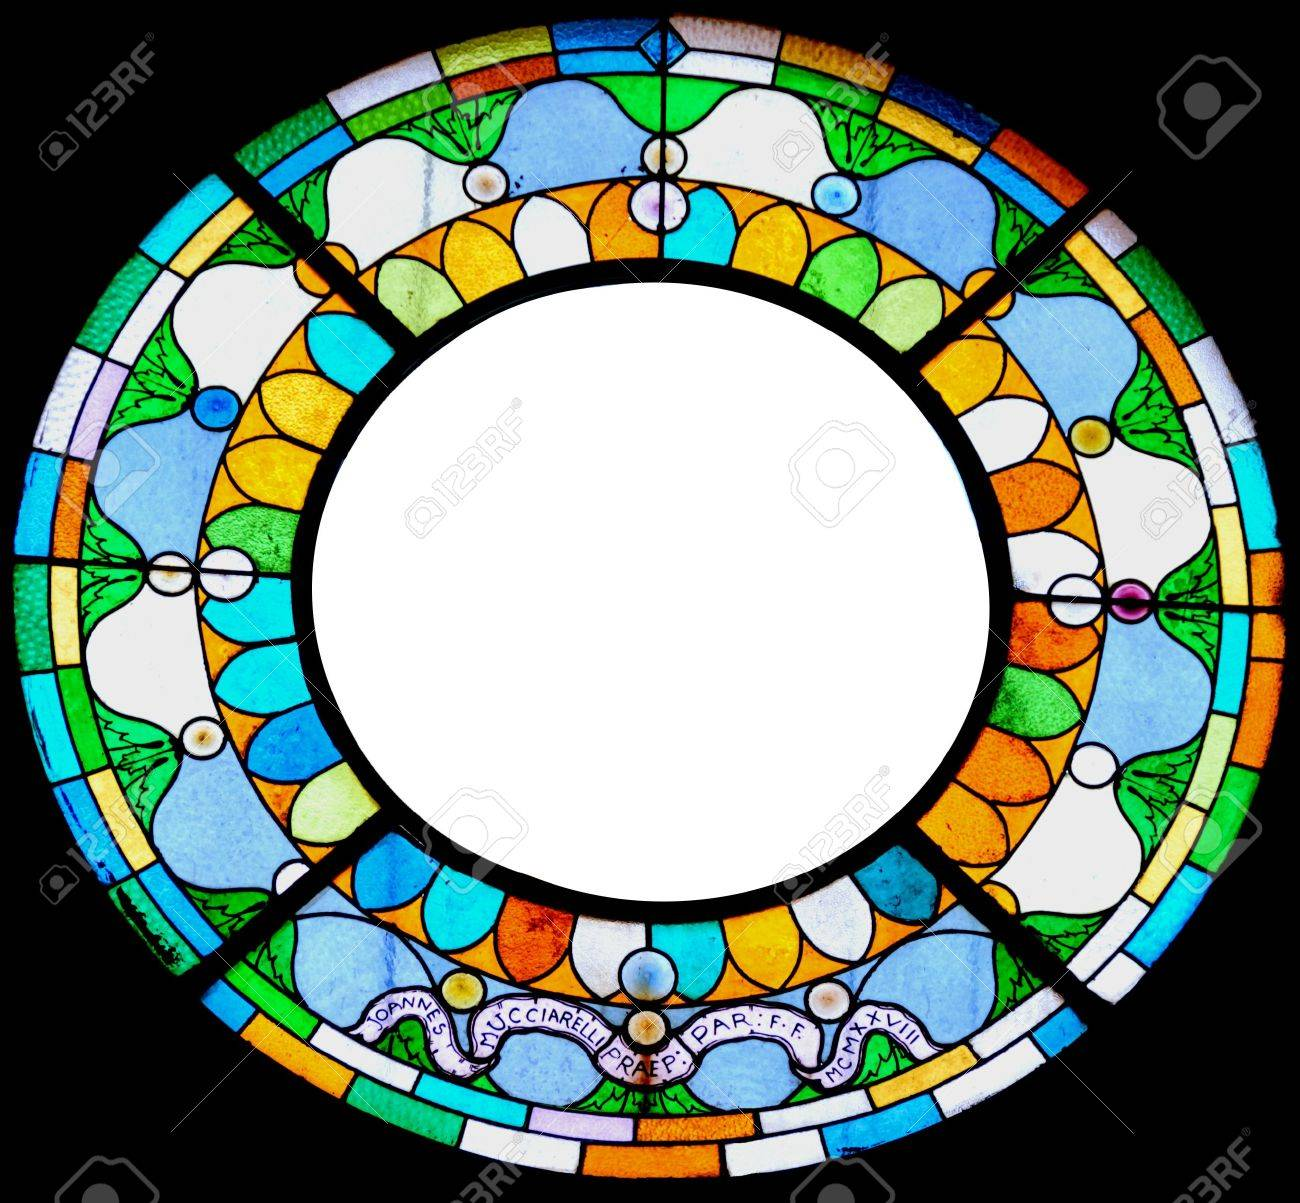 Circular Stained Glass Frame For Picture Or Message. Stock Photo ...